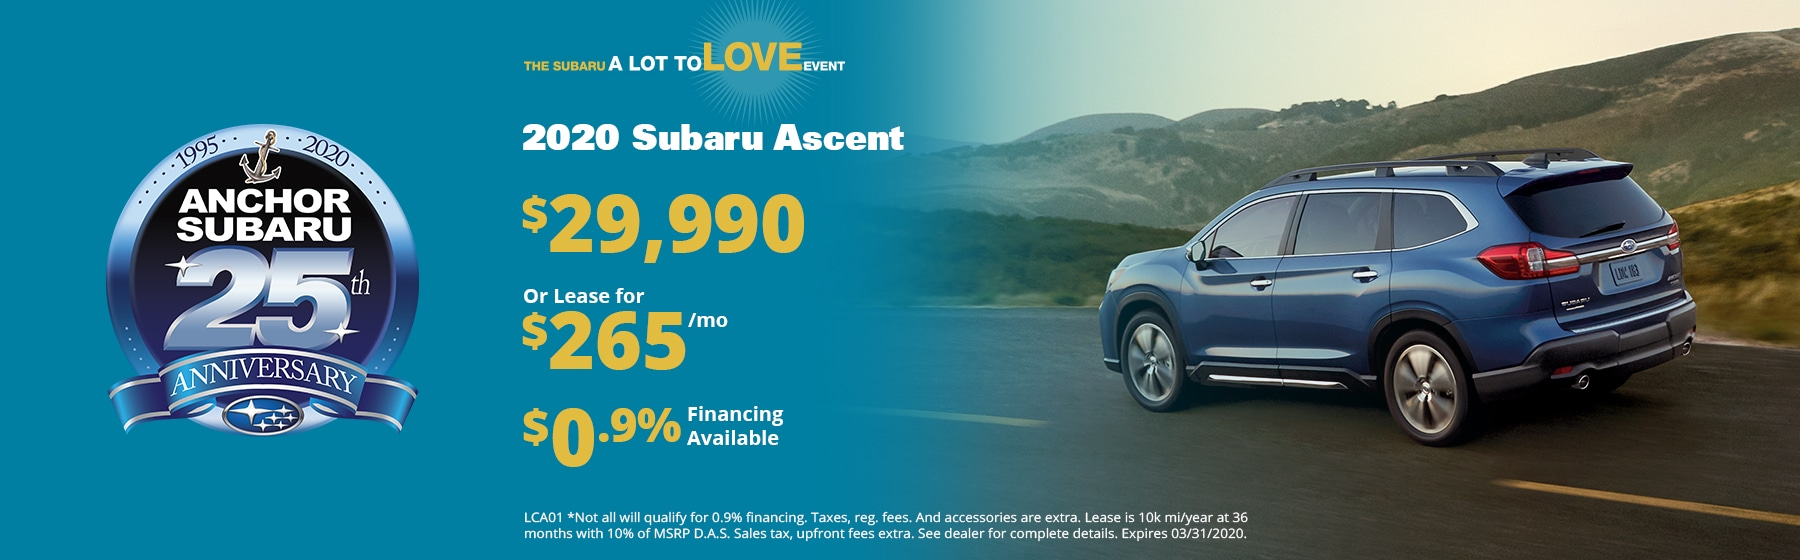 Subaru Ascent Lease Special